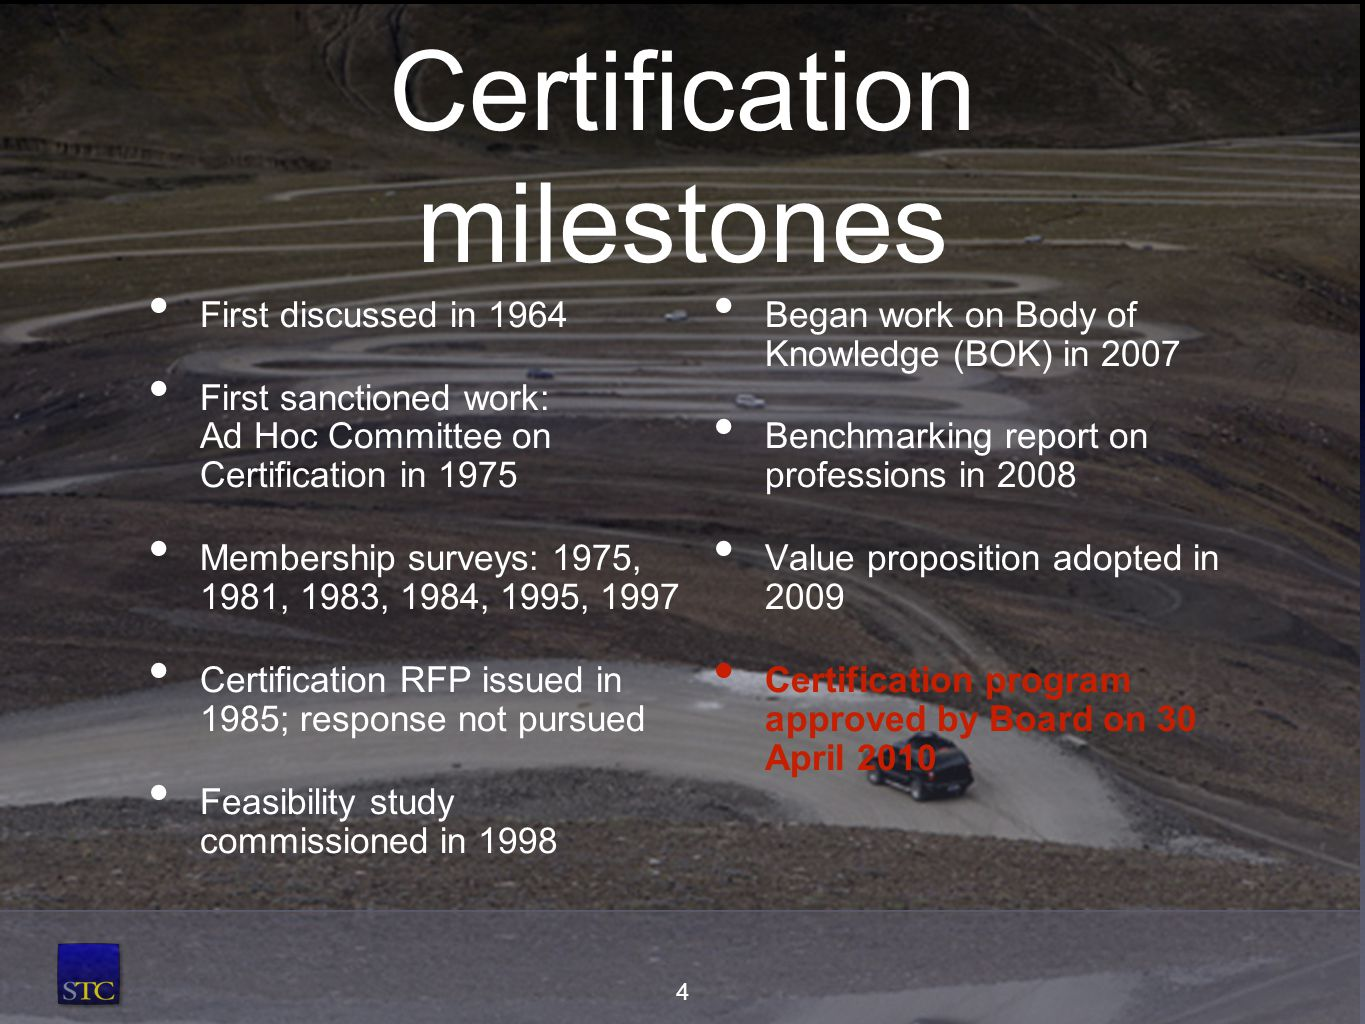 Certification milestones First discussed in 1964 First sanctioned work: Ad Hoc Committee on Certification in 1975 Membership surveys: 1975, 1981, 1983, 1984, 1995, 1997 Certification RFP issued in 1985; response not pursued Feasibility study commissioned in 1998 Began work on Body of Knowledge (BOK) in 2007 Benchmarking report on professions in 2008 Value proposition adopted in 2009 Certification program approved by Board on 30 April 2010 4